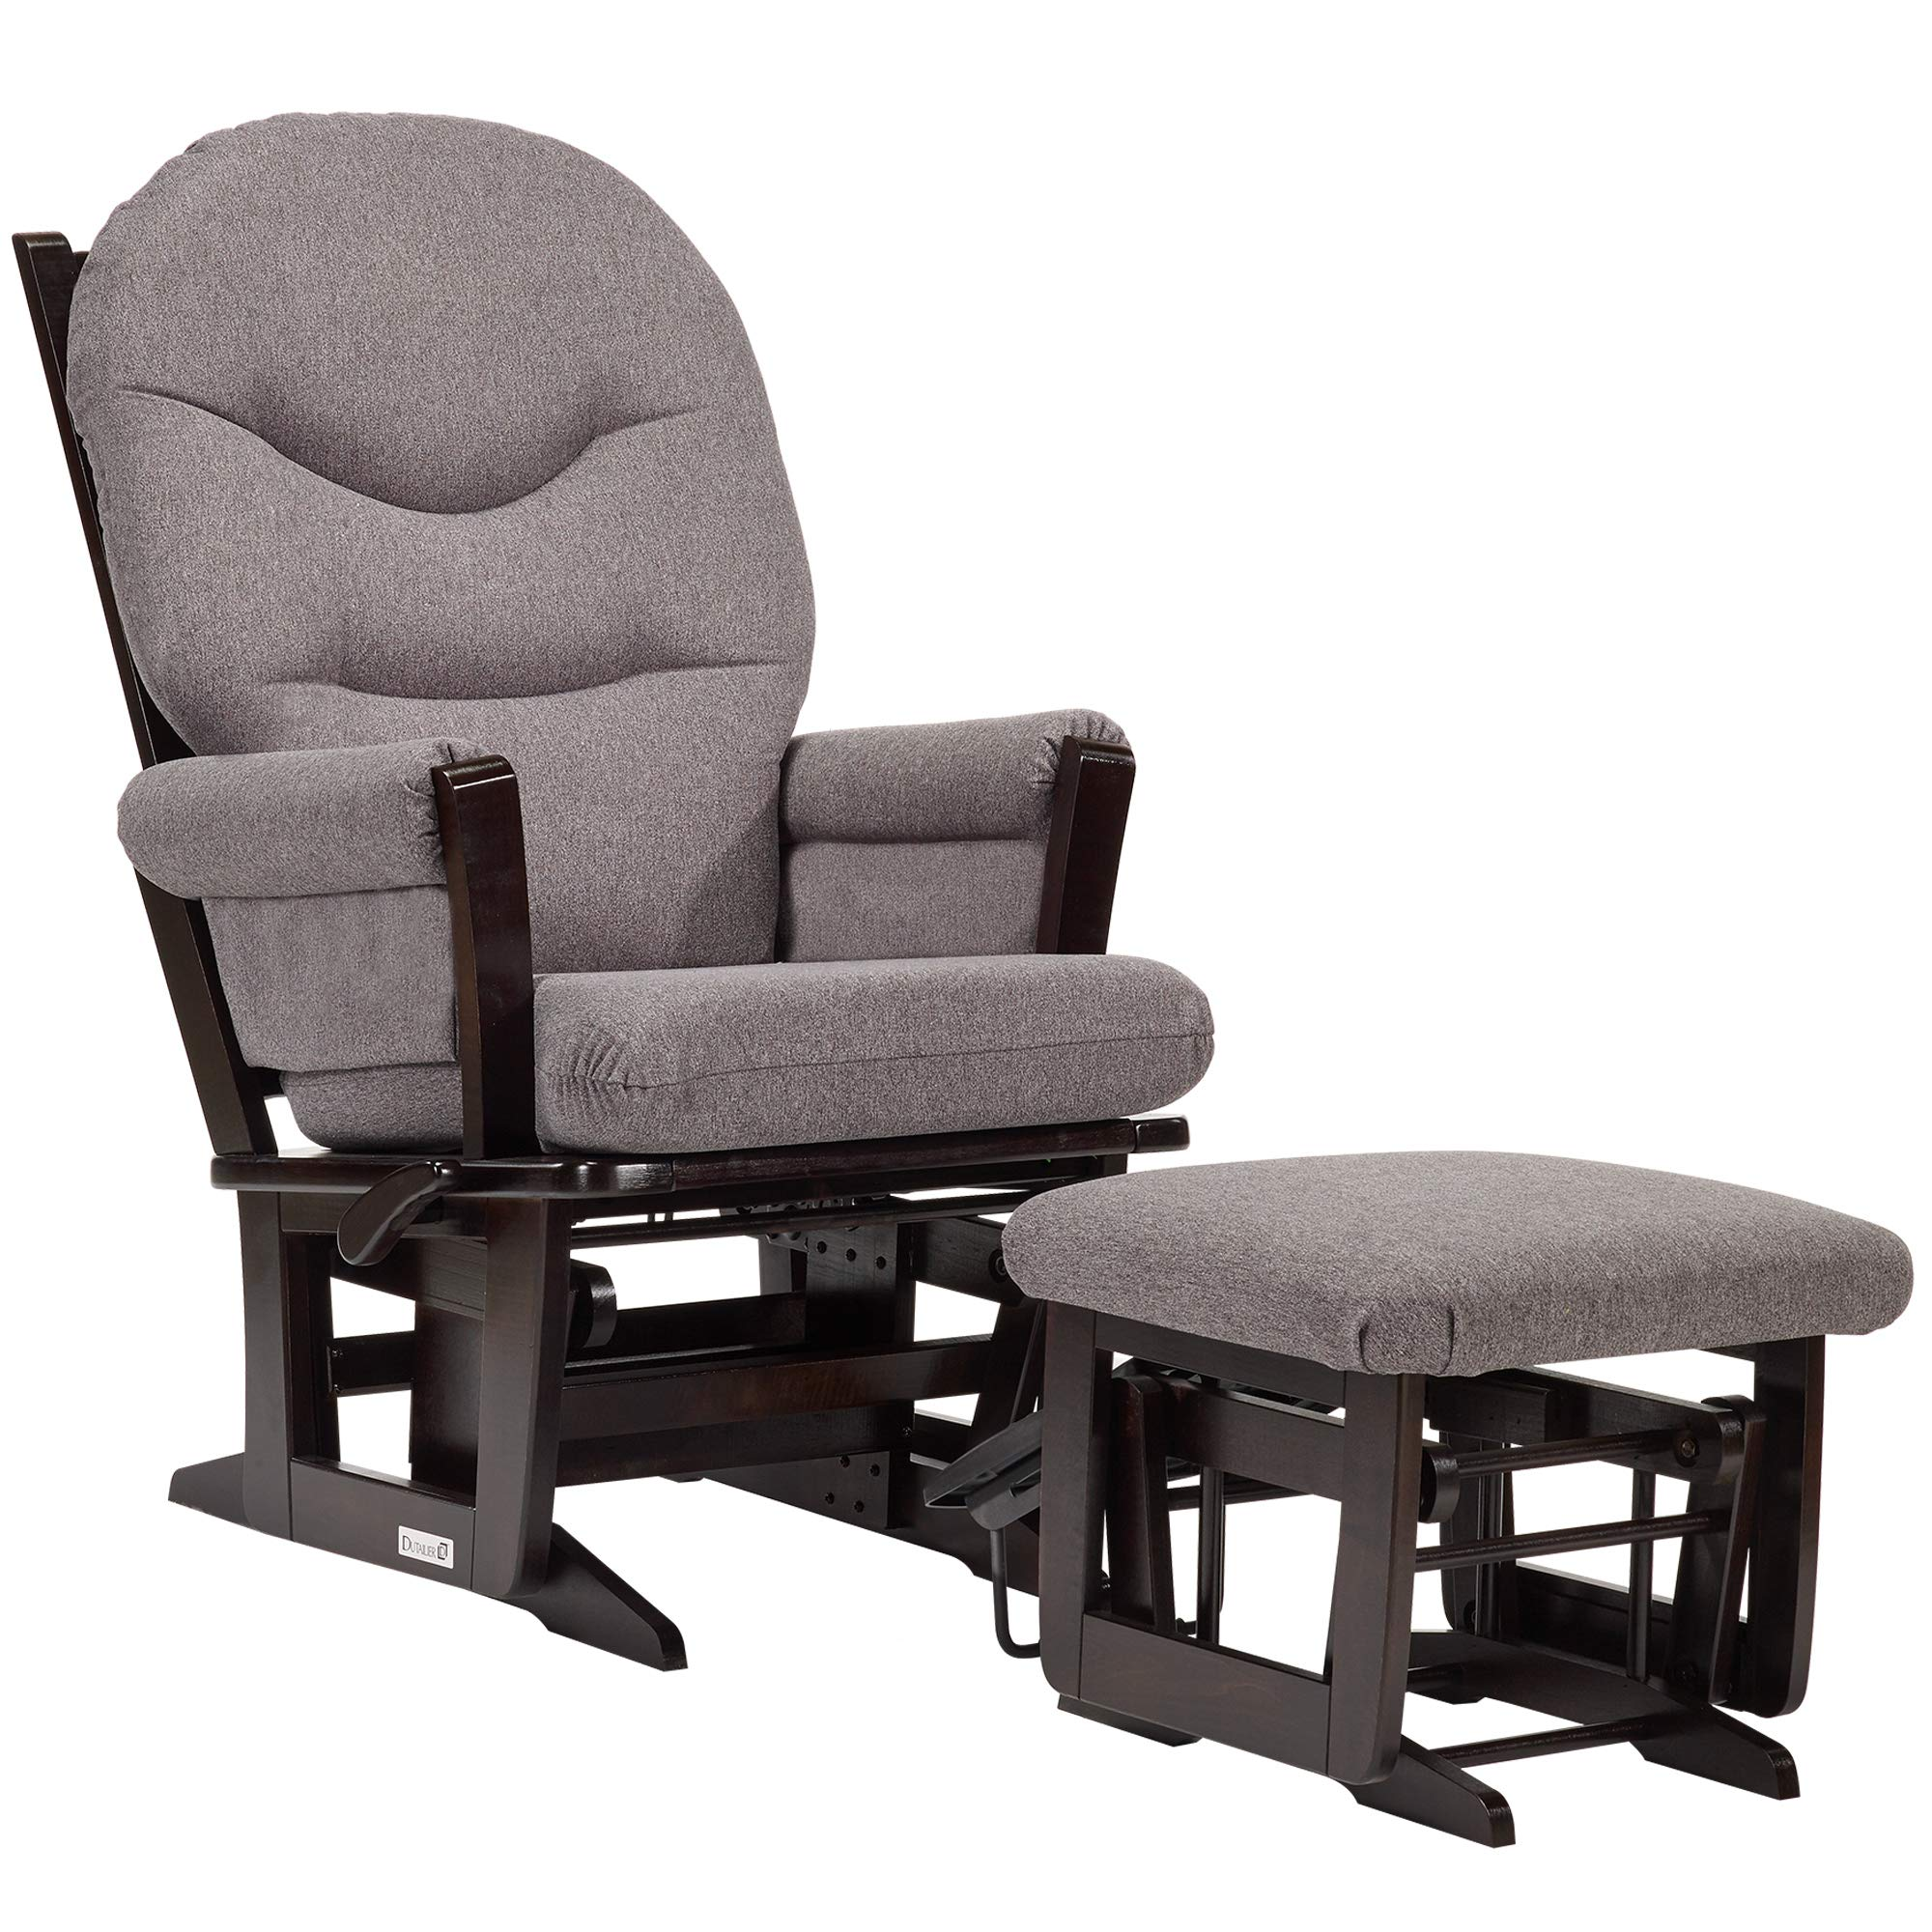 Dutailier Modern 0408 Glider Multiposition-Lock Recline with Nursing Ottoman Included by Dutailier